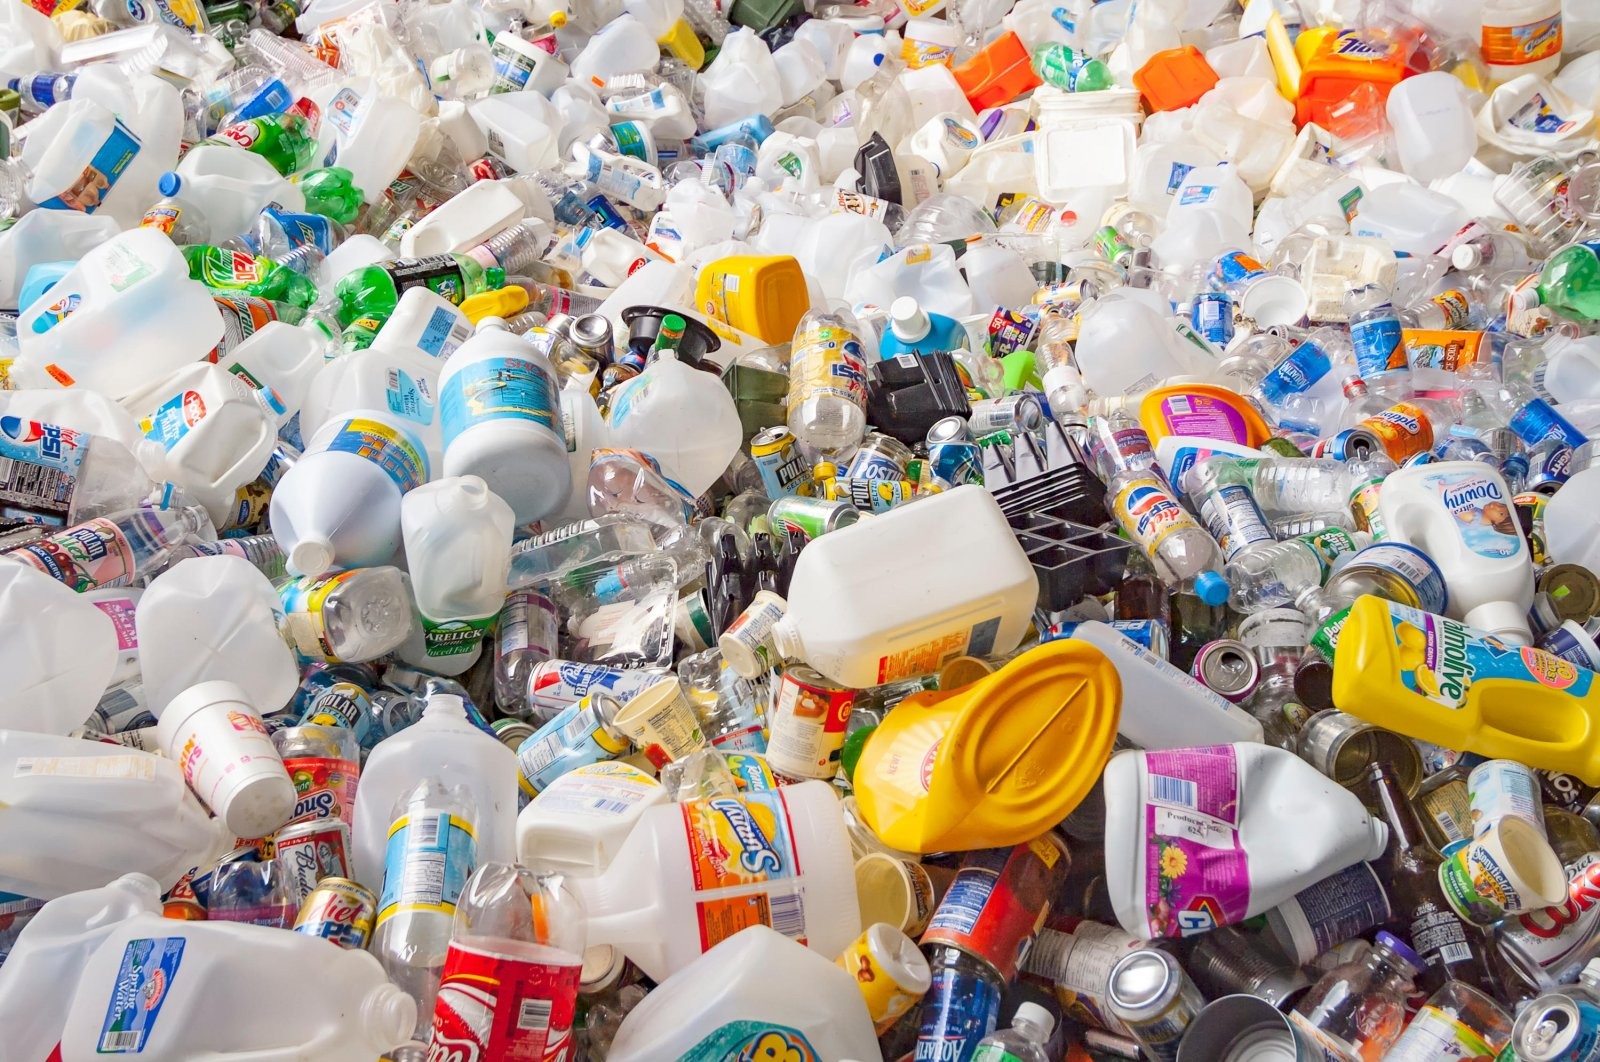 Turkey removed polymers such as plastic bags and styrofoam cups from the waste products that can be imported into the country. (Alamy Photo)